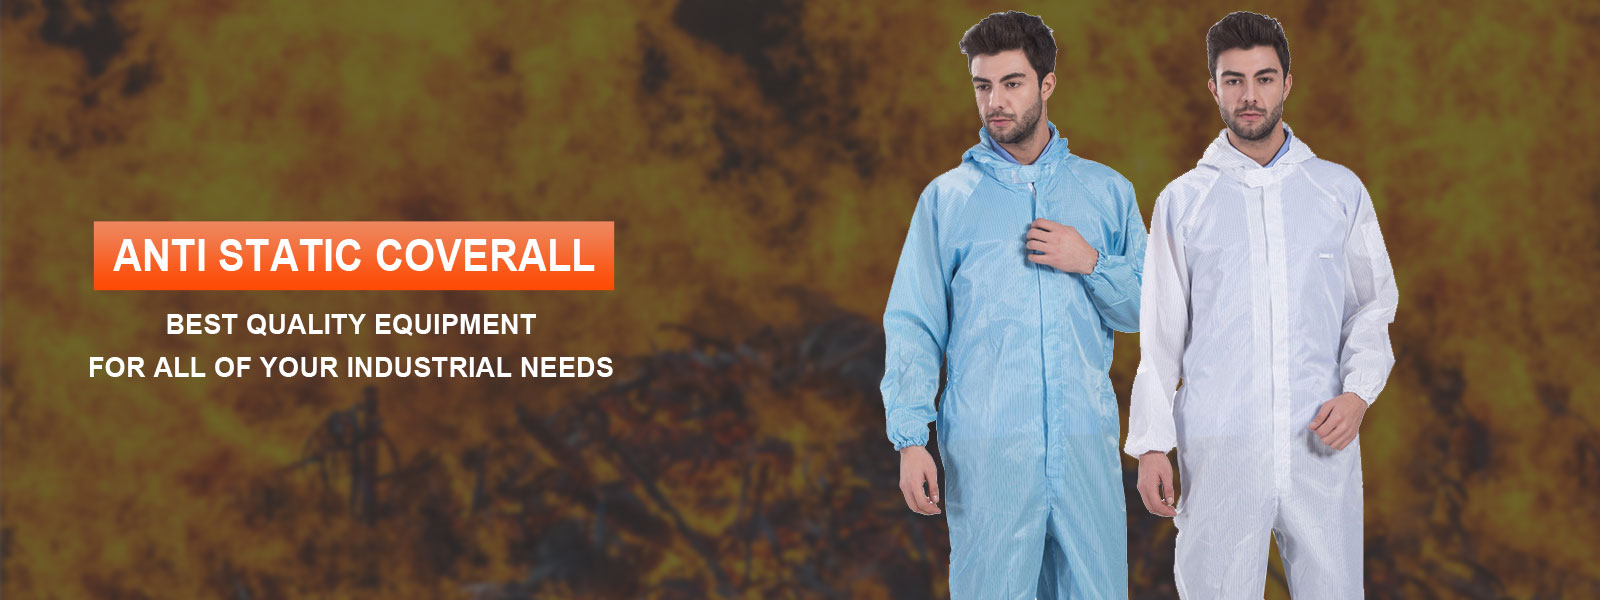 Anti Static Coverall Manufacturers in Moldova